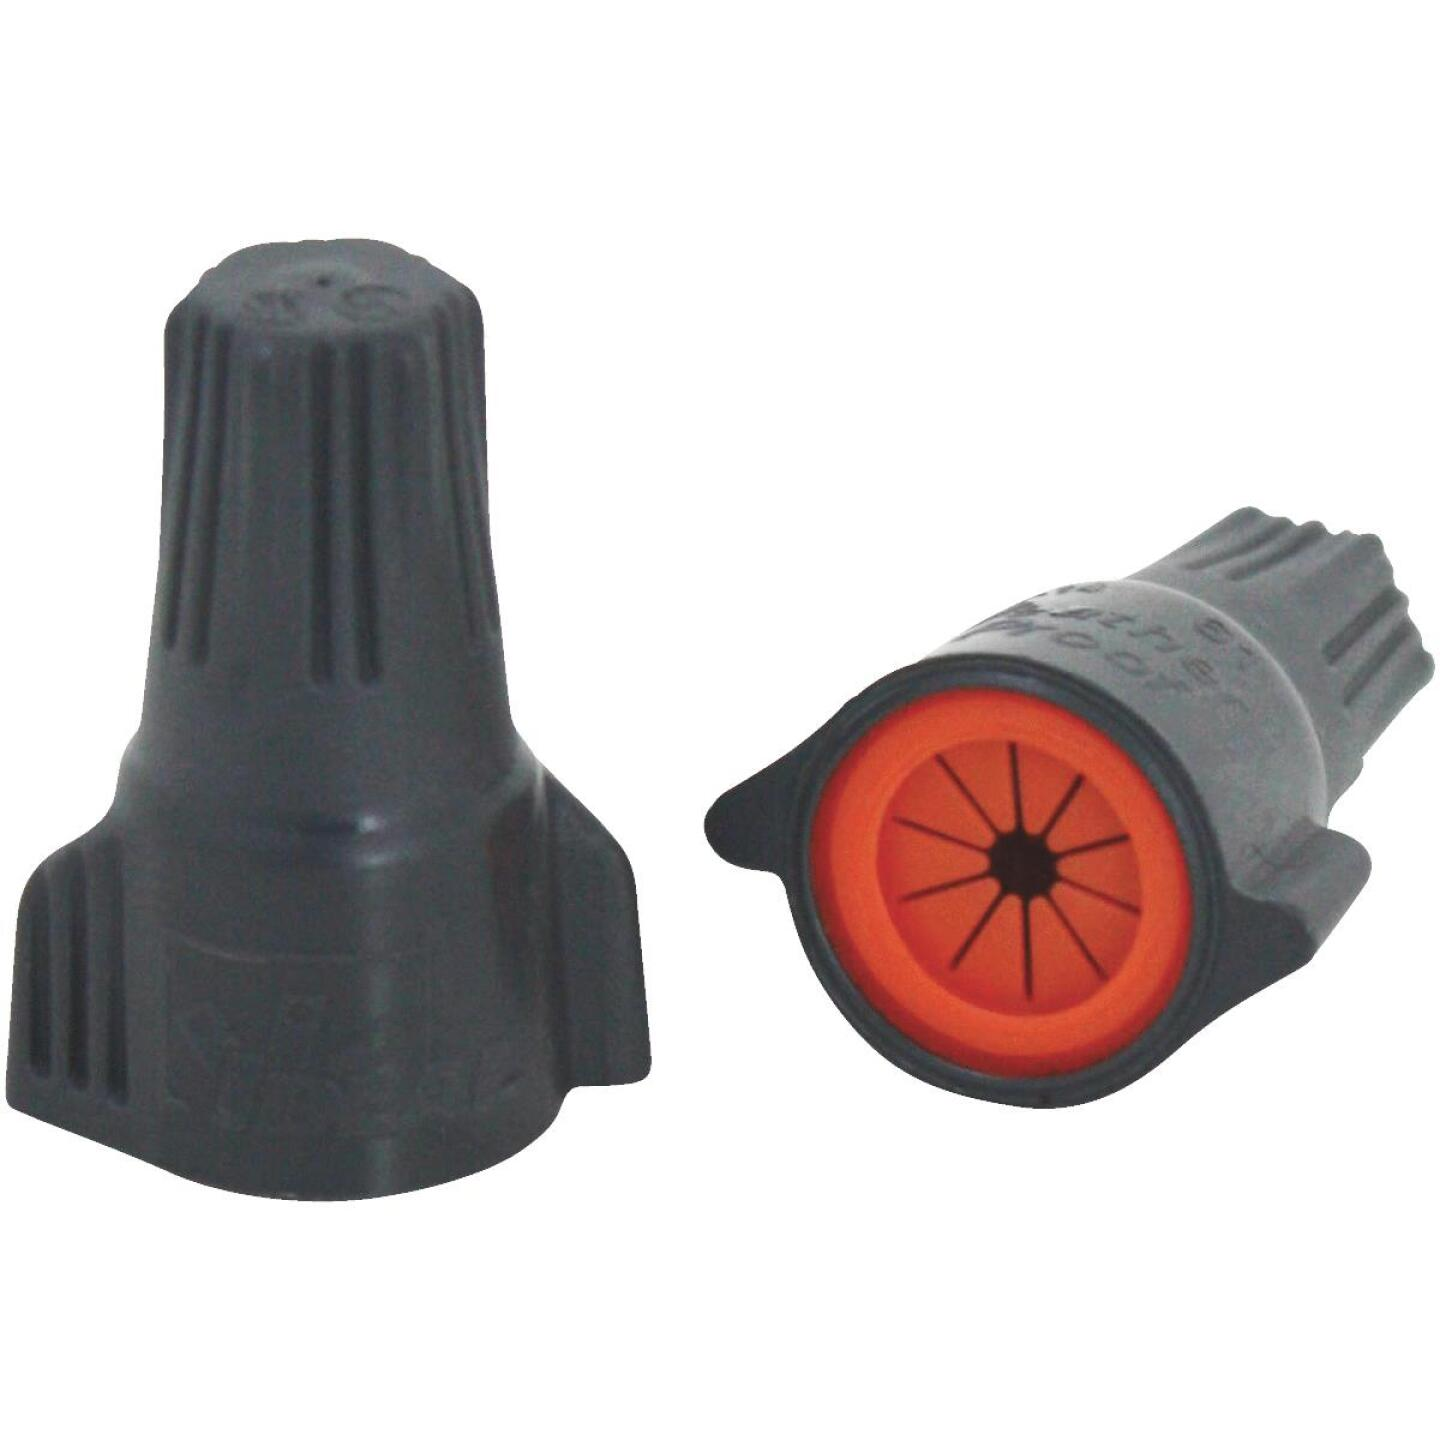 Ideal WeatherProof Small Blue/Orange Copper to Copper Wire Connector (25-Pack) Image 1